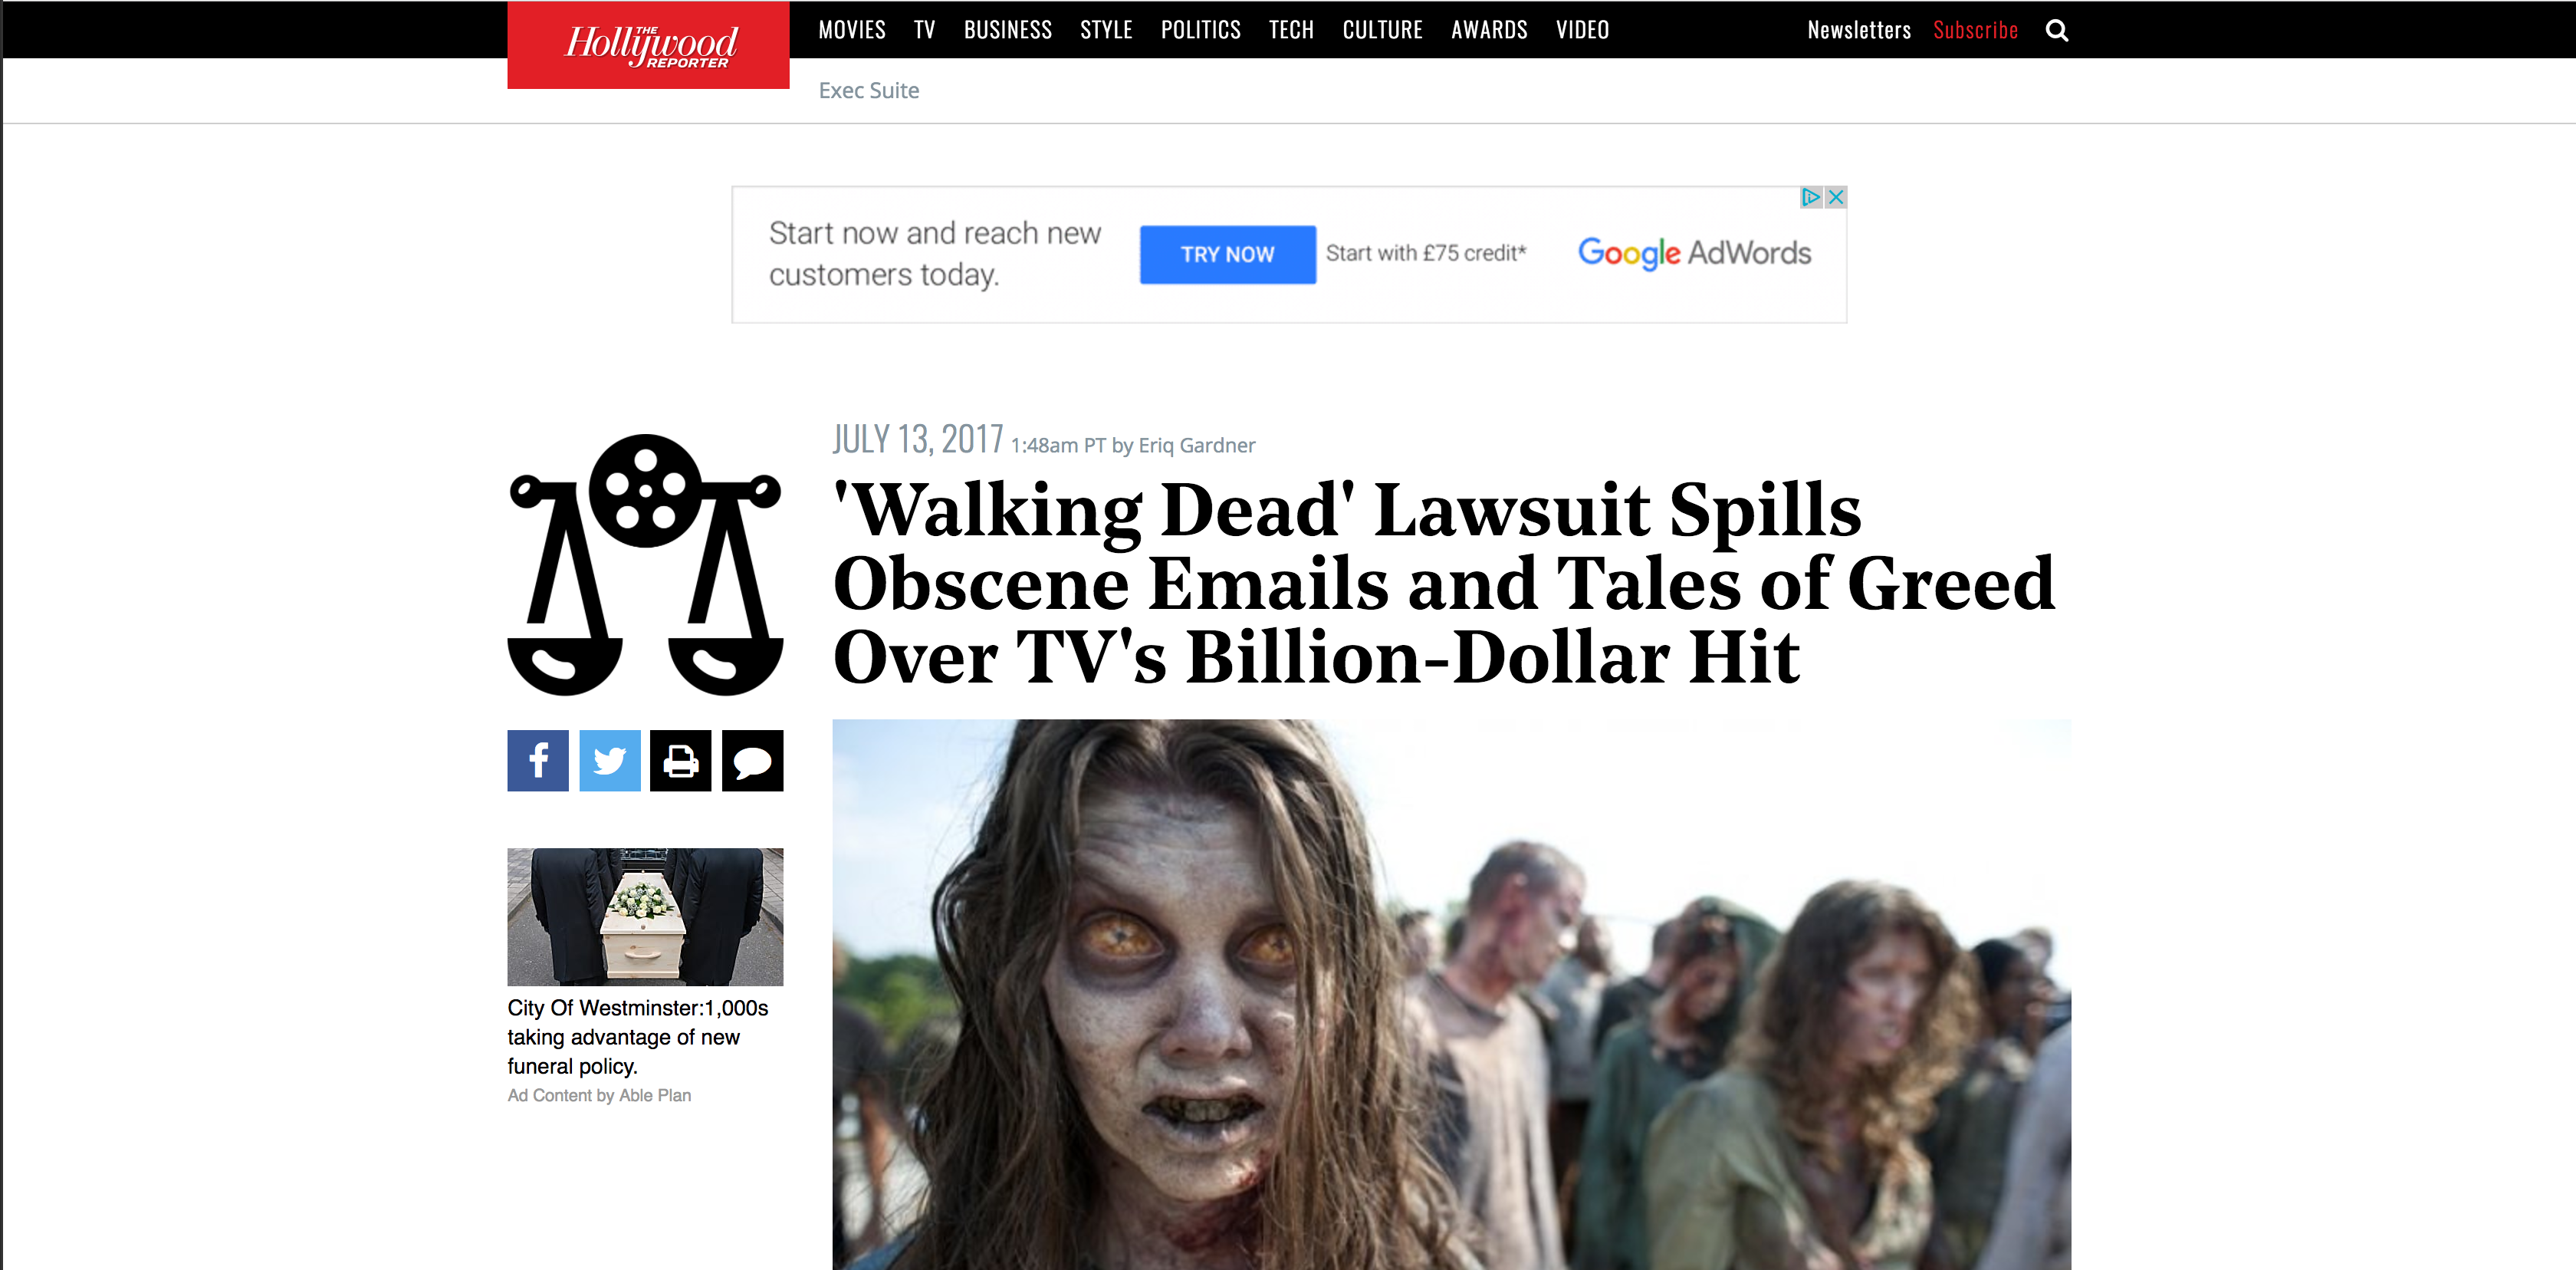 Fairness Rocks News 'Walking Dead' Lawsuit Spills Obscene Emails and Tales of Greed Over TV's Billion-Dollar Hit